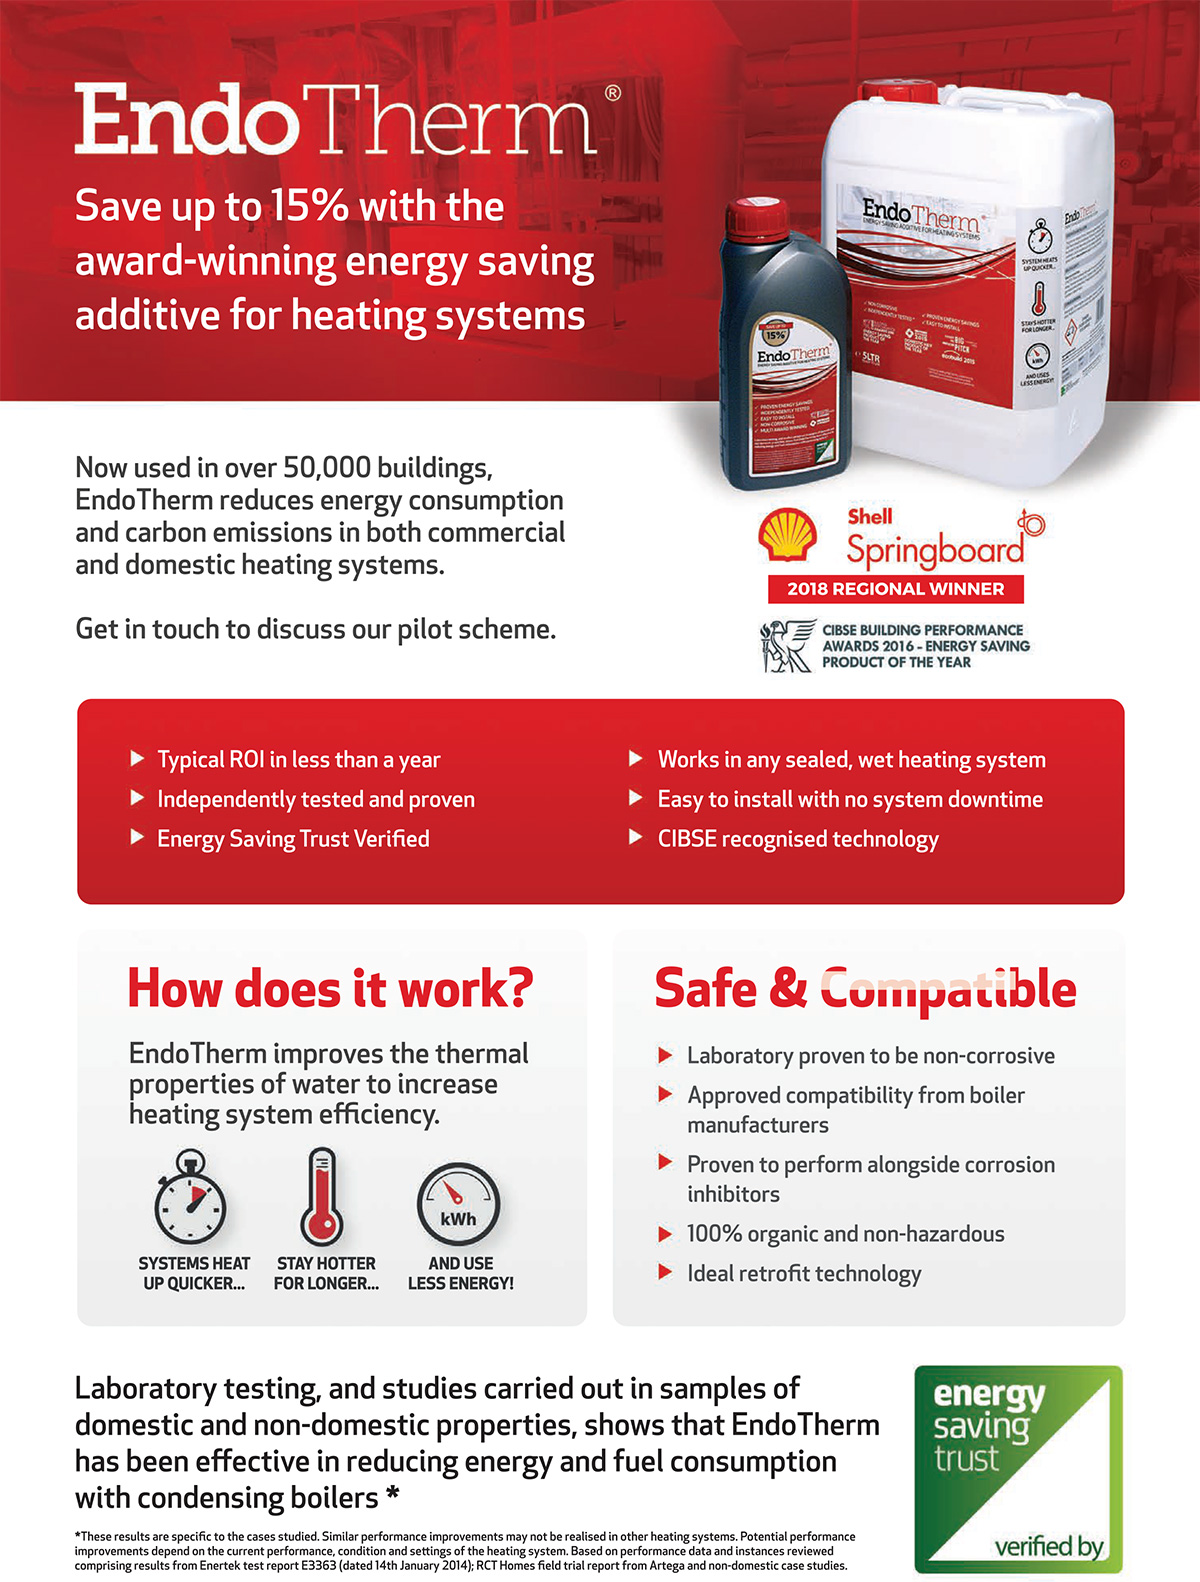 EndoTherm - Energy Saving Heating Additive